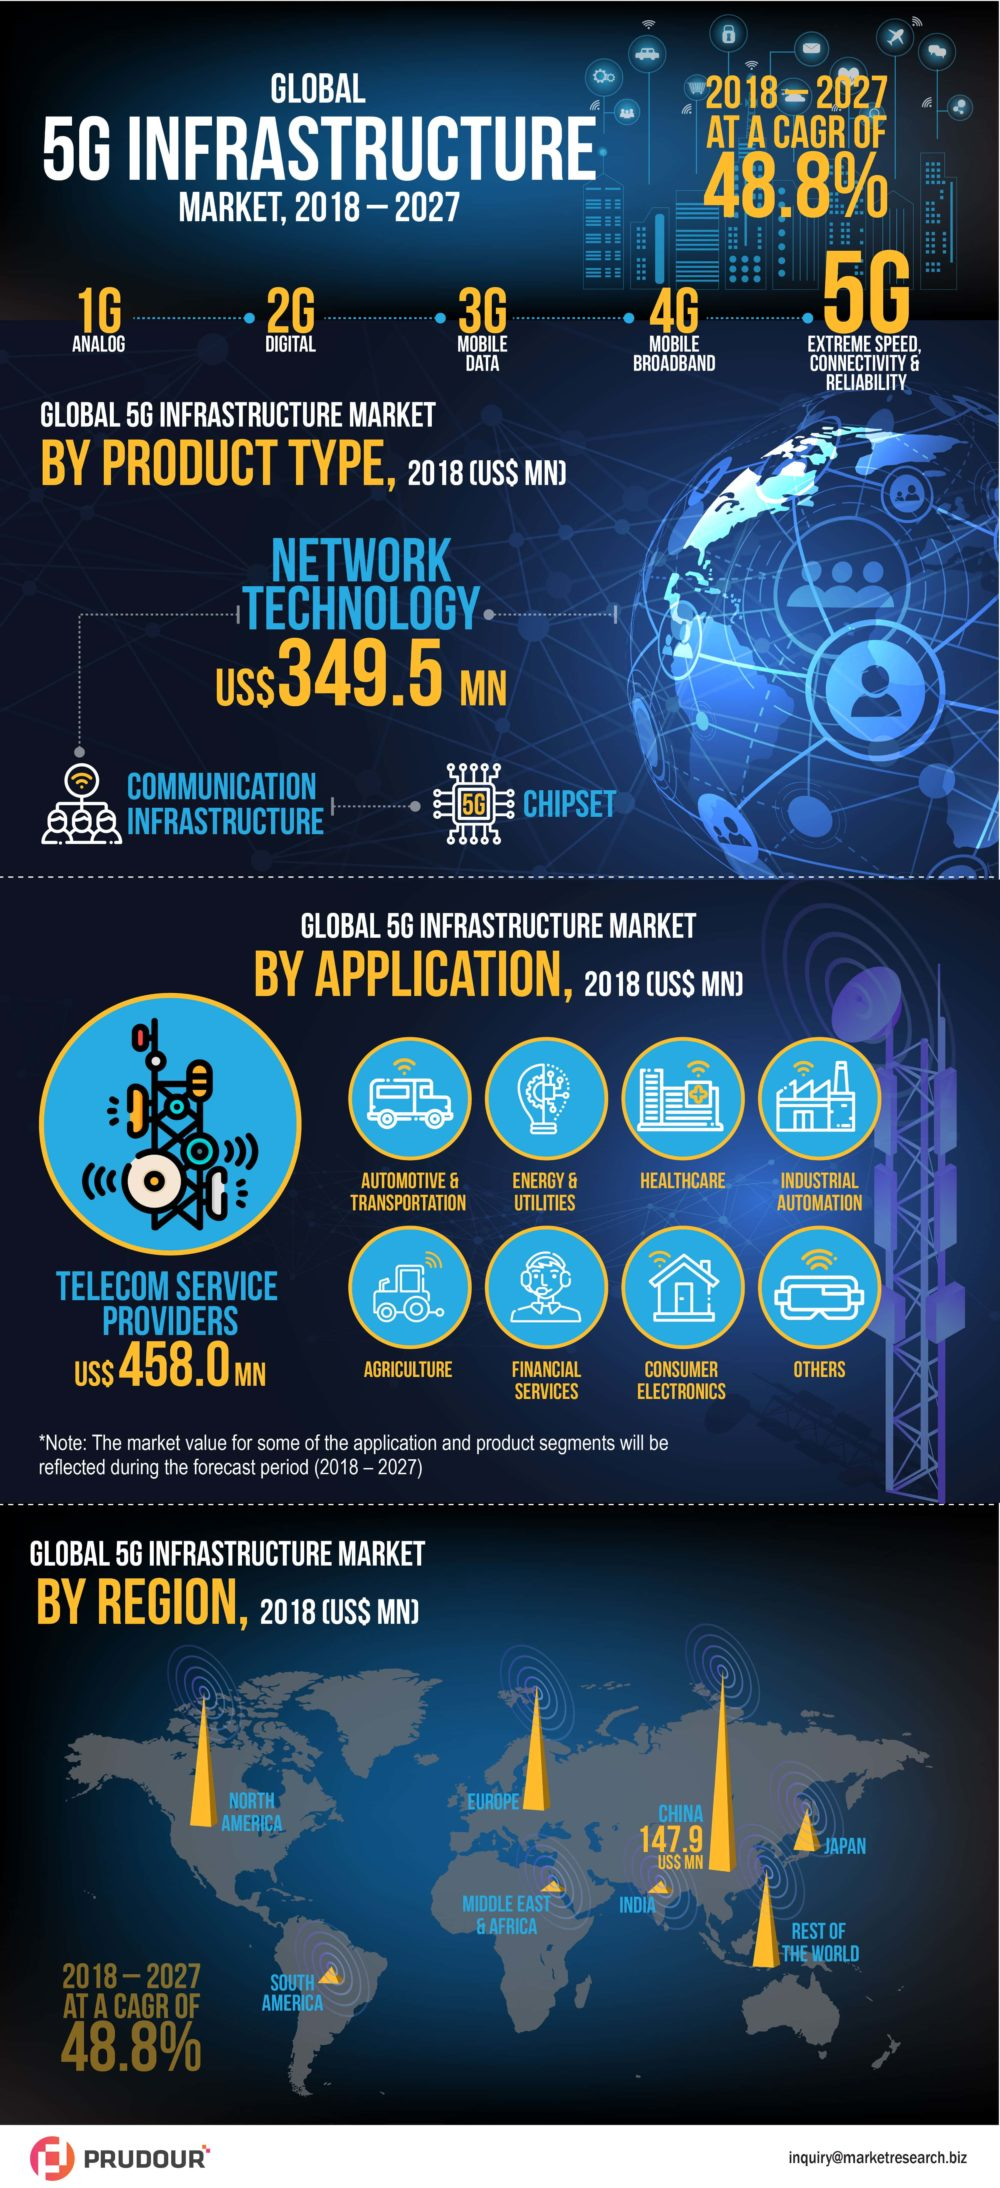 2027 CAGR Of 48.8%: 5G Infrastructure Market Is Expected To Reach A CAGR Of 48.8% From 2018-2027